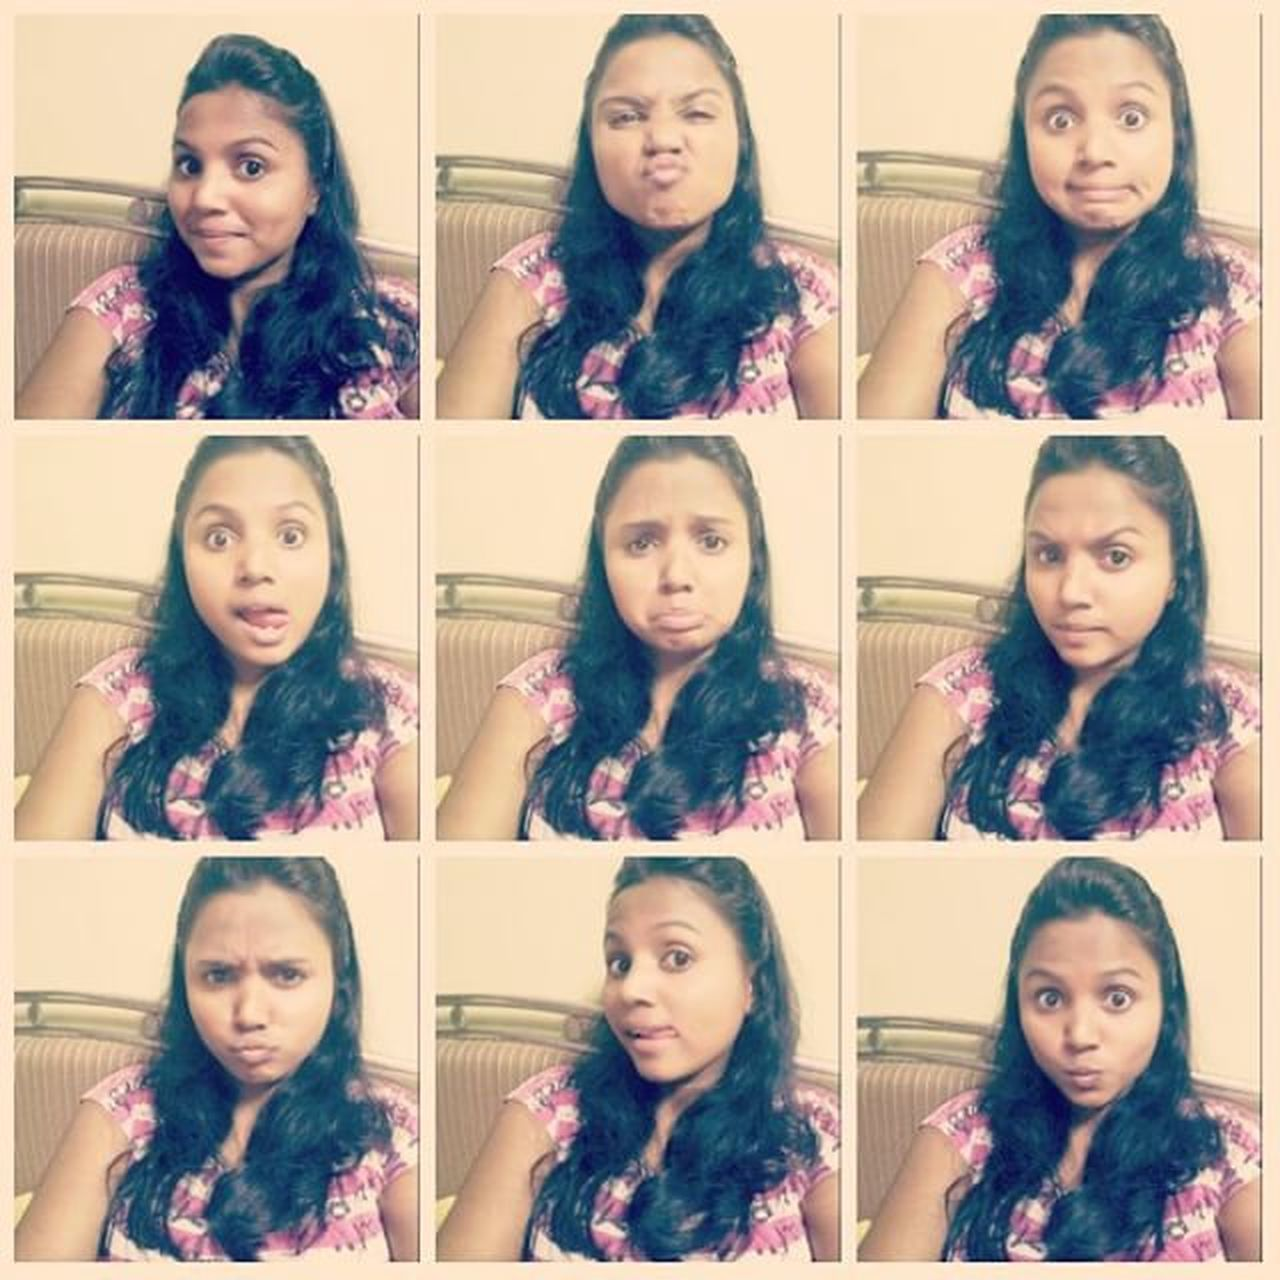 Expression TP Loving to poseSelfieeee le le